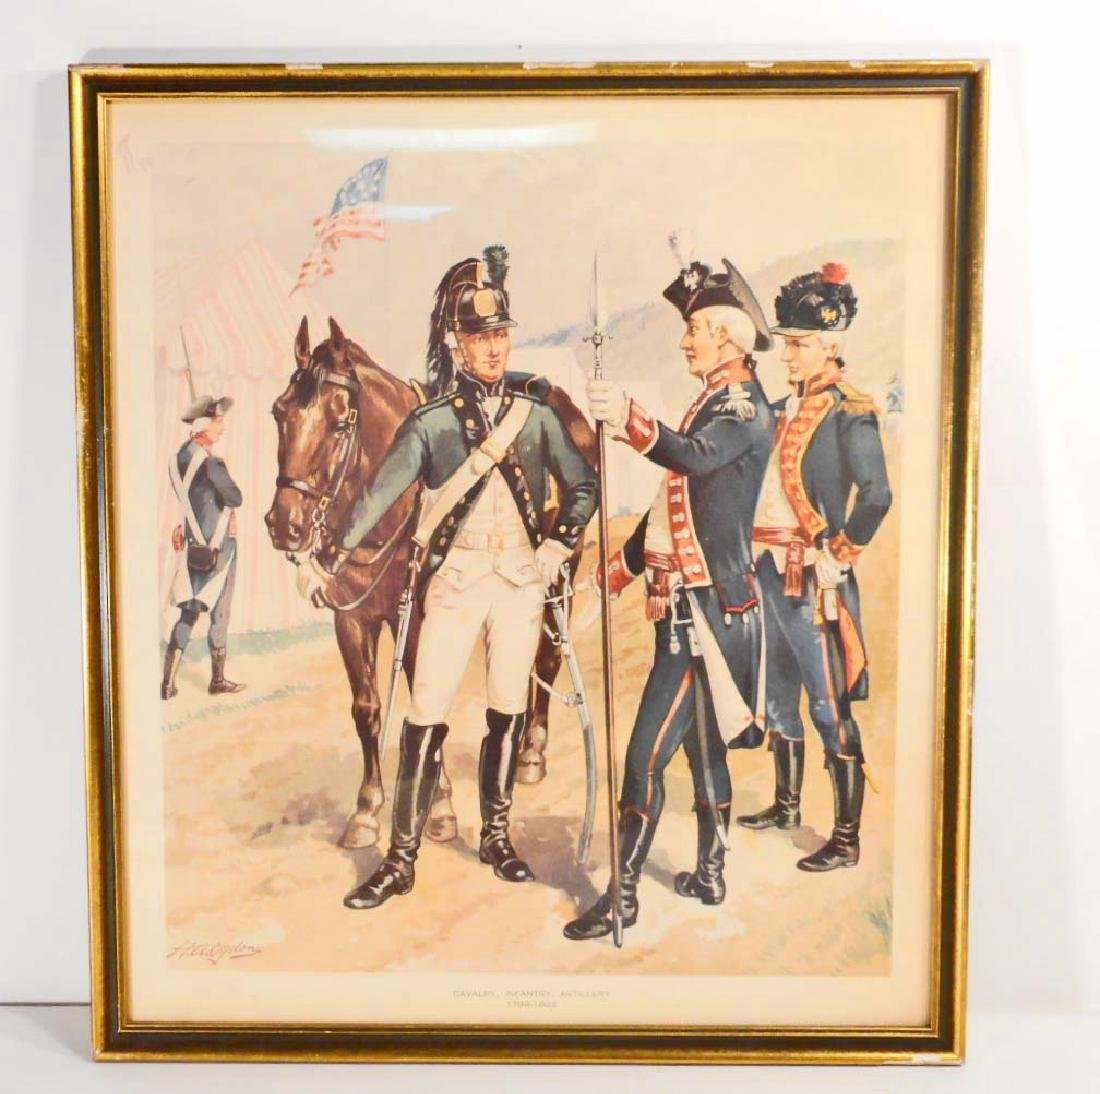 VINTAGE CAVALRY INFANTRY ARTILLERY FRAMED LITHOGRAPH -